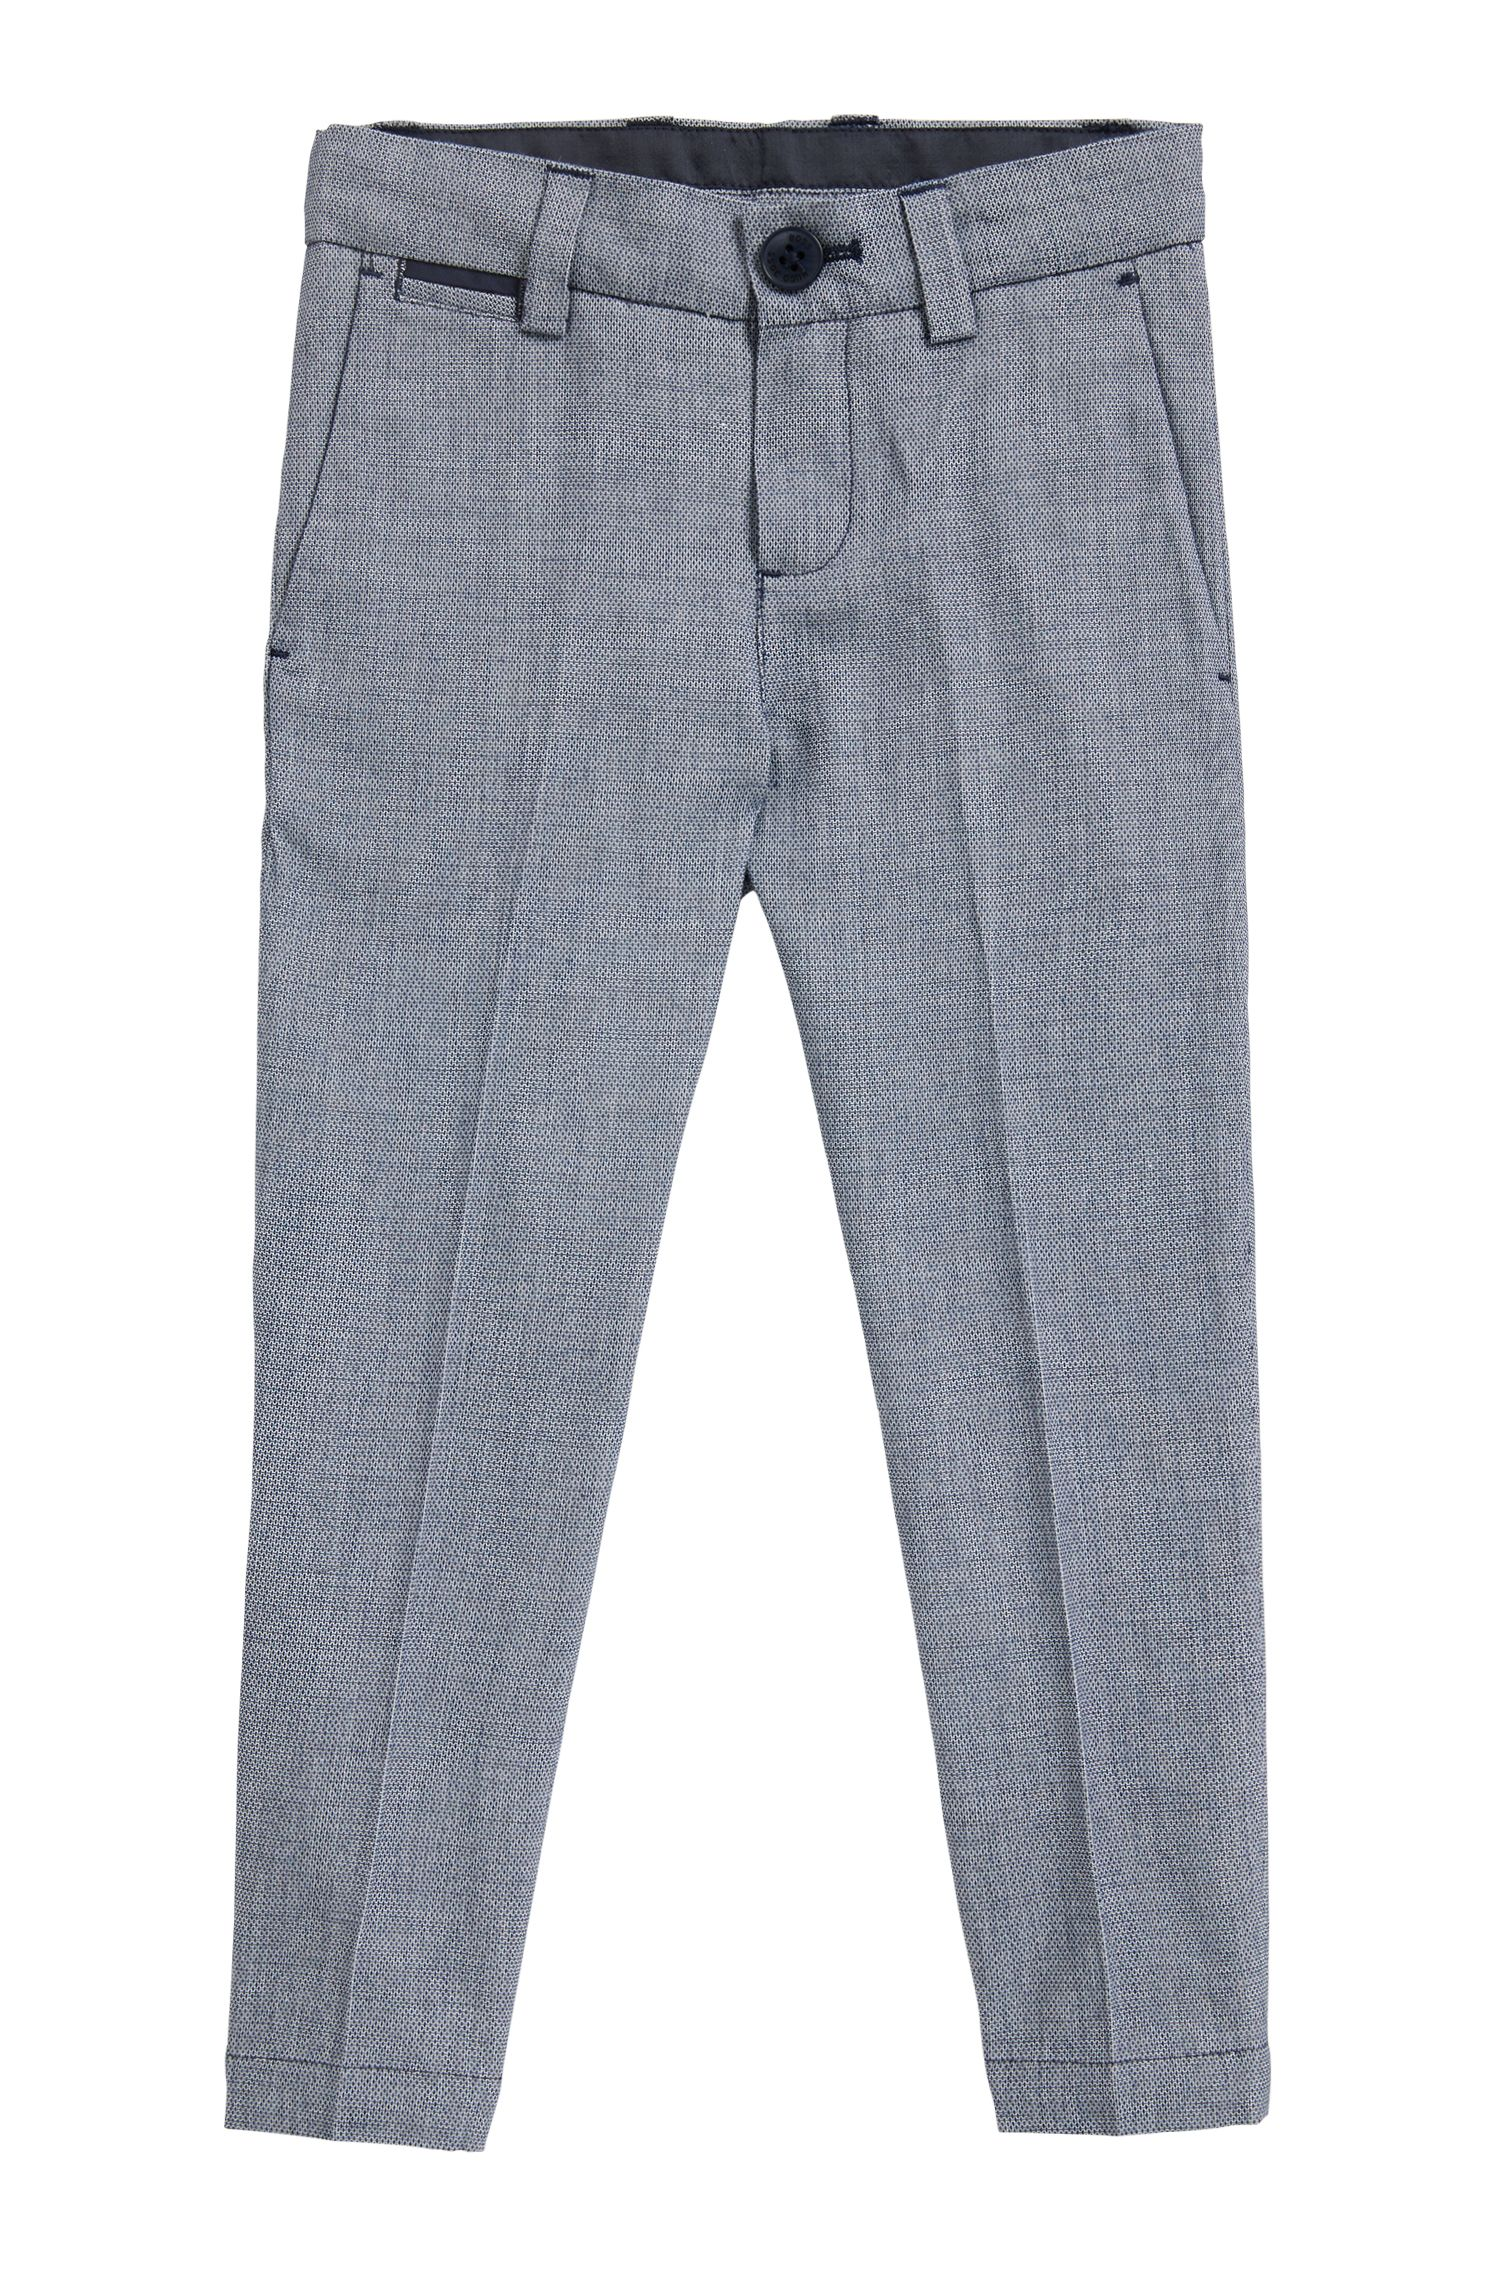 Kids' suit trousers in woven cotton